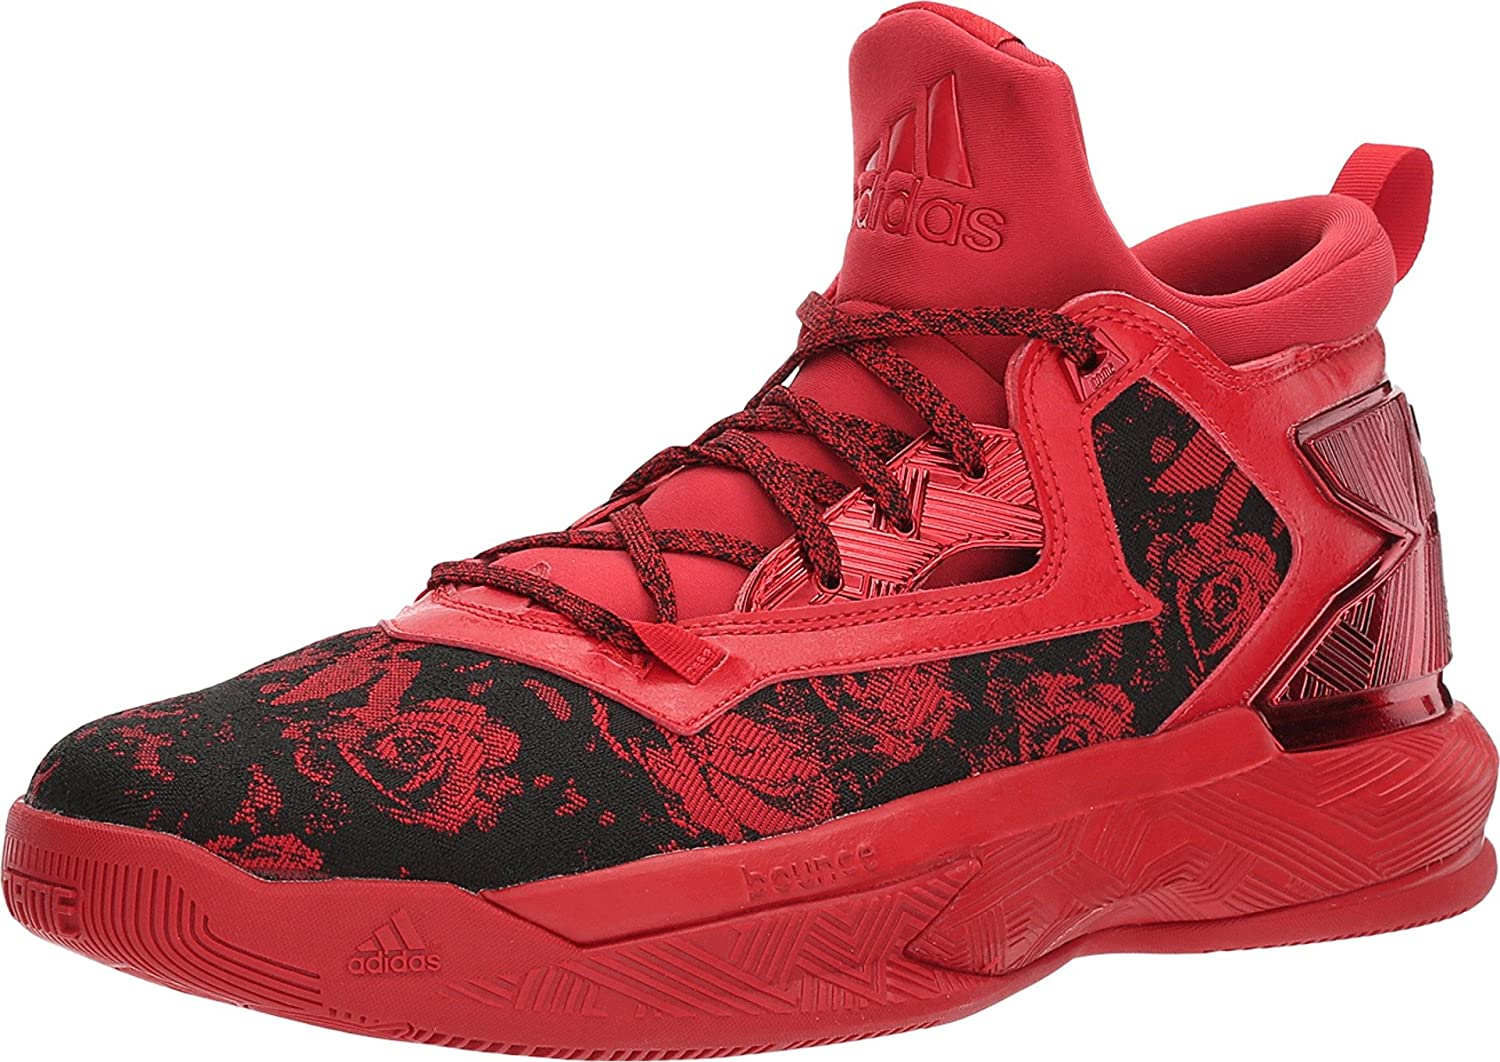 huge selection of bf7f5 ad20e Amazon.com  adidas D Lillard 2 Mens Basketball Shoe  Basketb